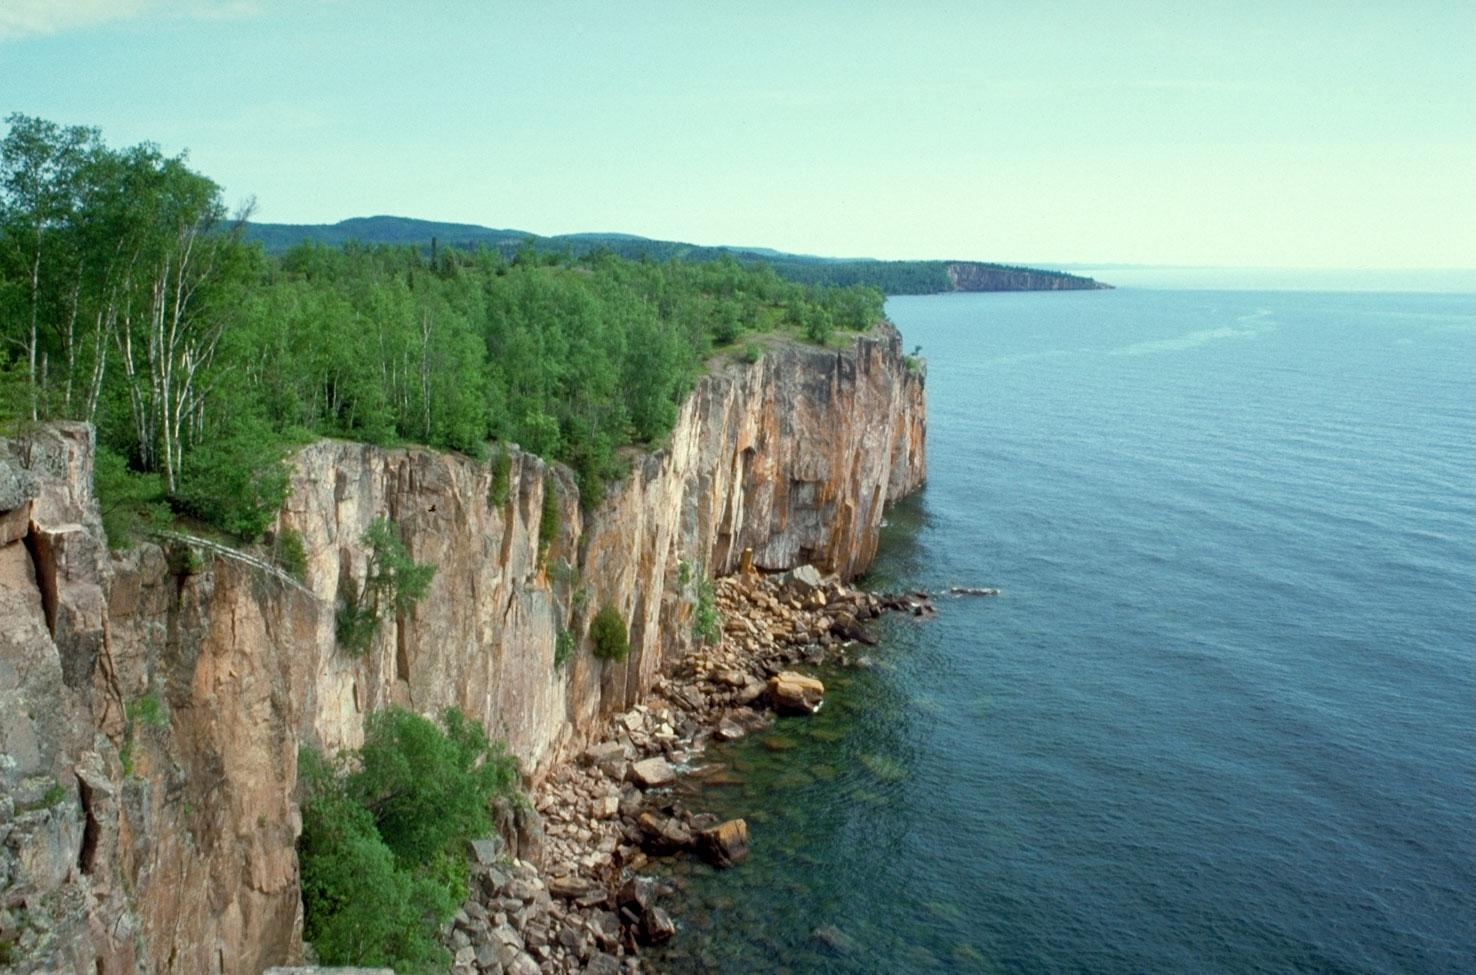 Cliffs on the shores of Lake Superior from the Minnesota shore.